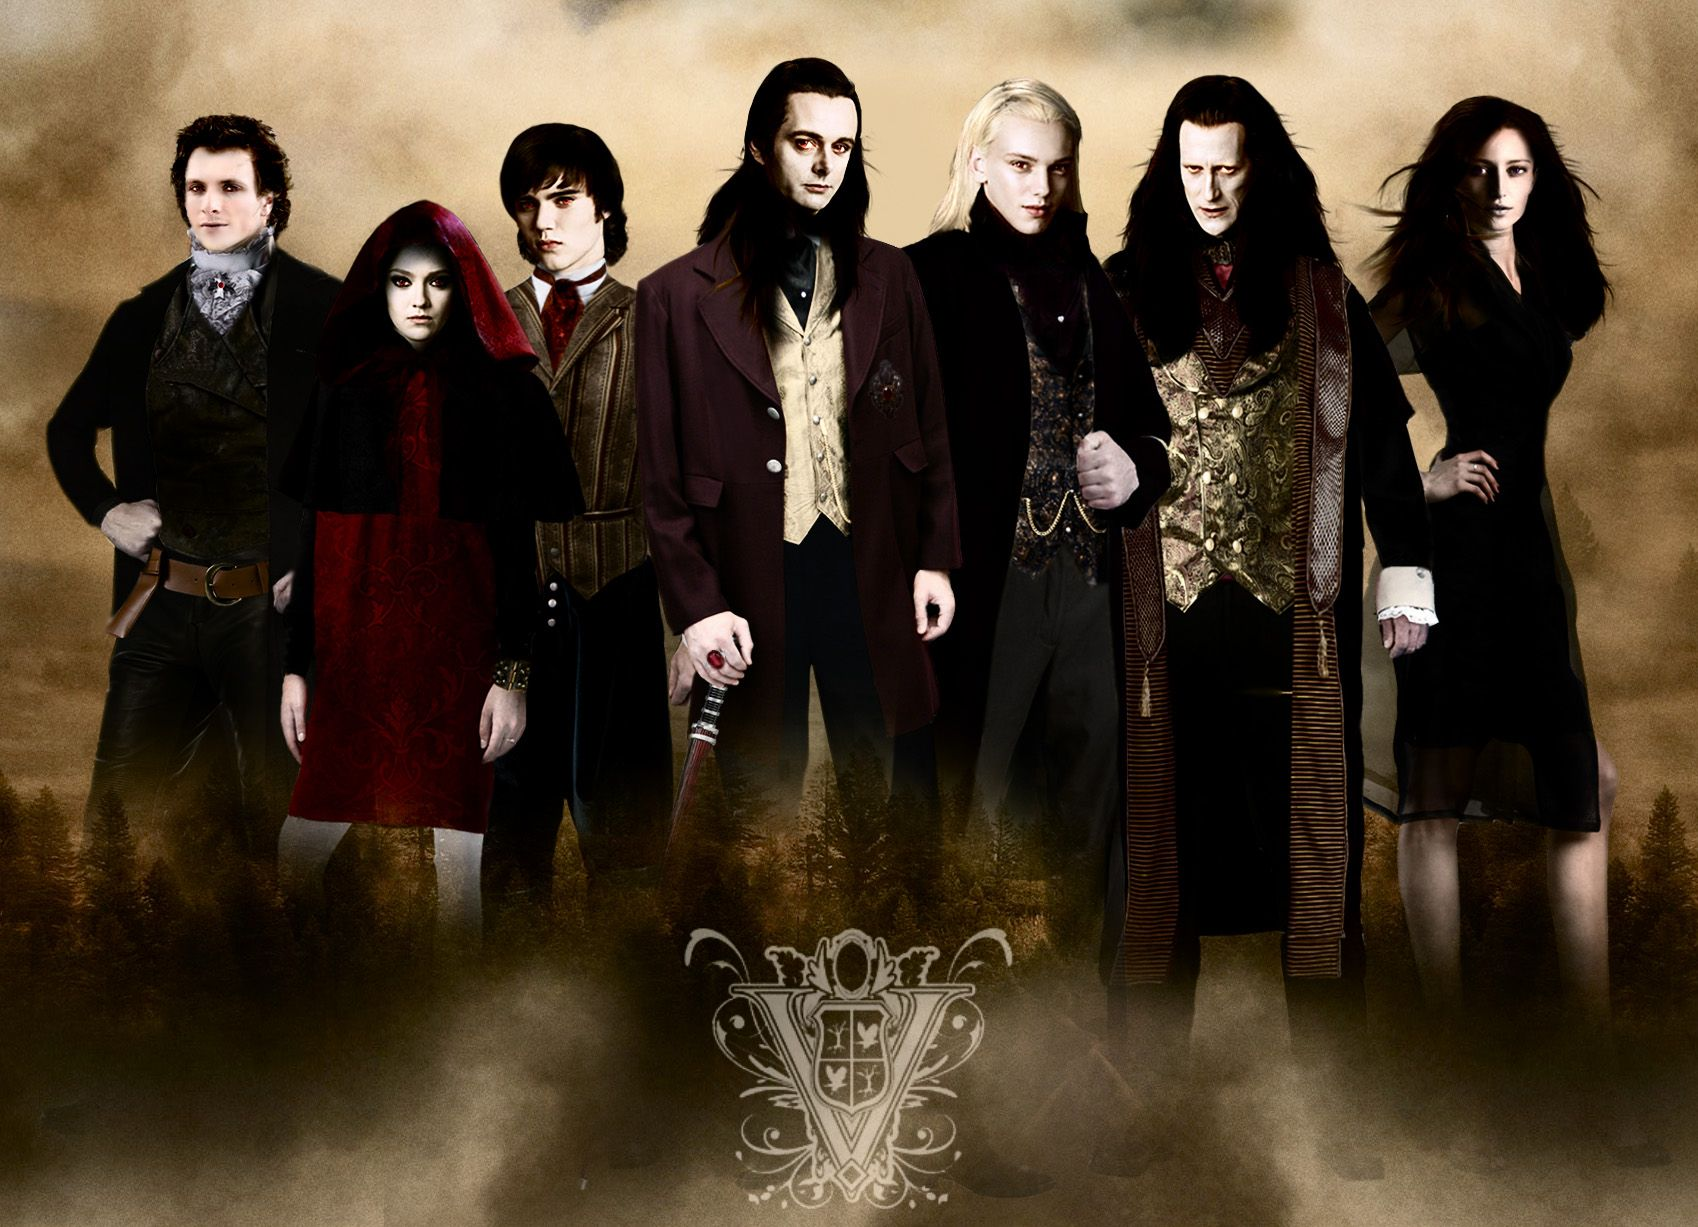 Twilight characters new moon images twilight cast and for New moon vampire movie